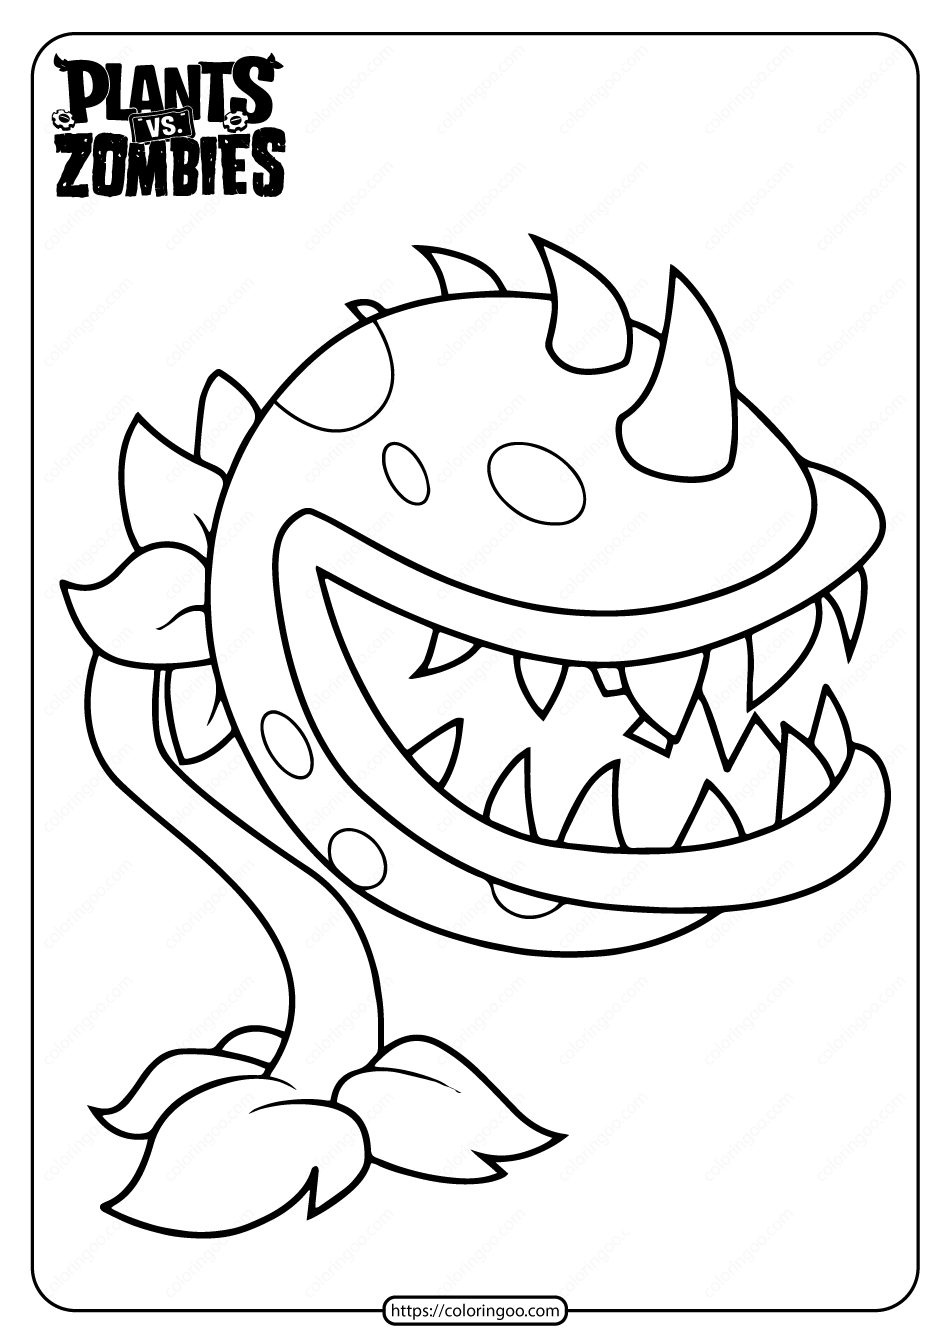 plants vs zombies coloring pages games plants vs zombies coloring pages to download and print for zombies pages coloring plants games vs